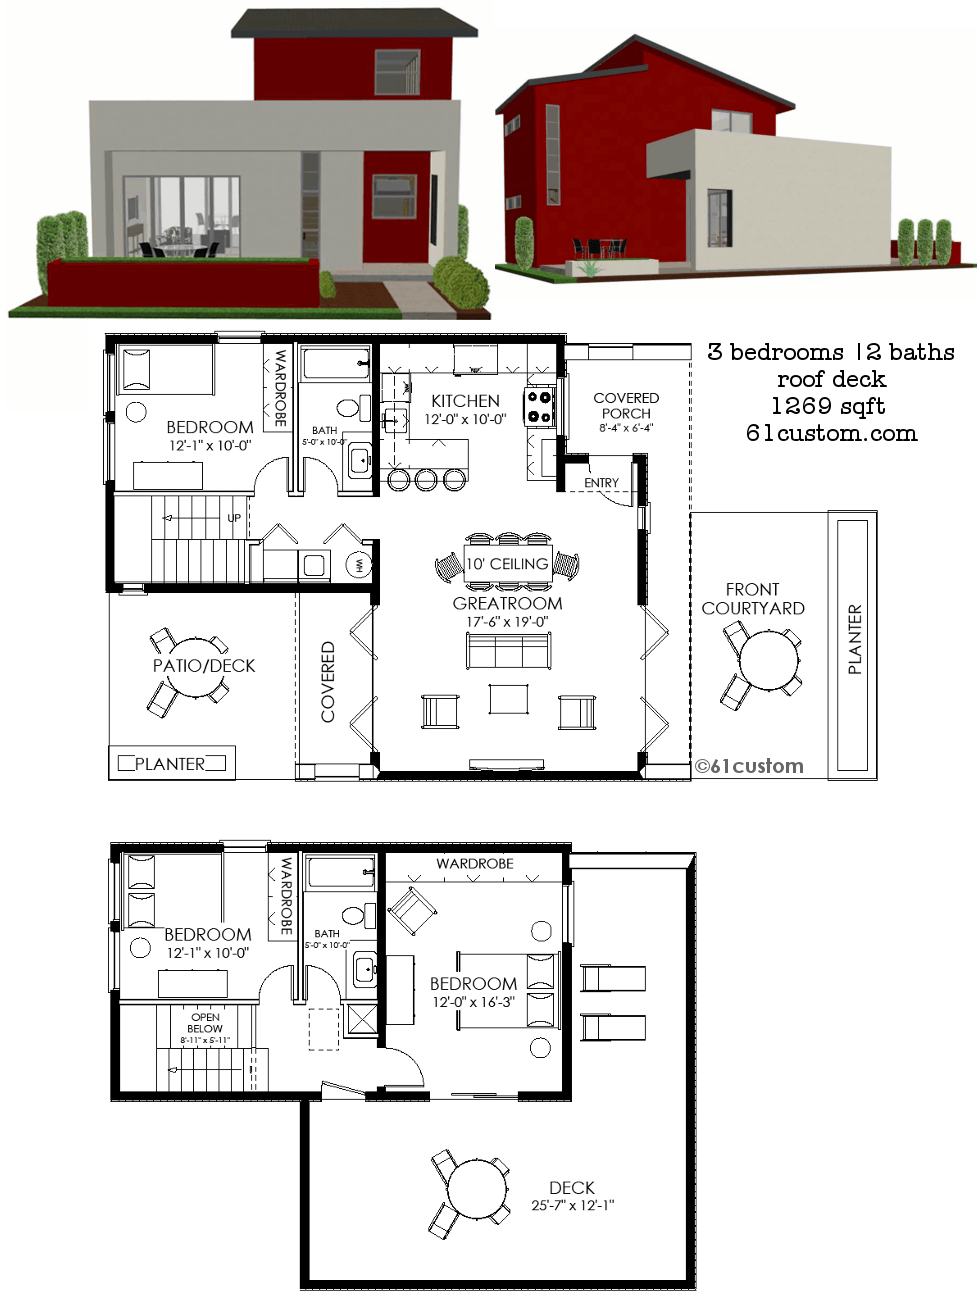 Contemporary small house plan 61custom contemporary Home layout